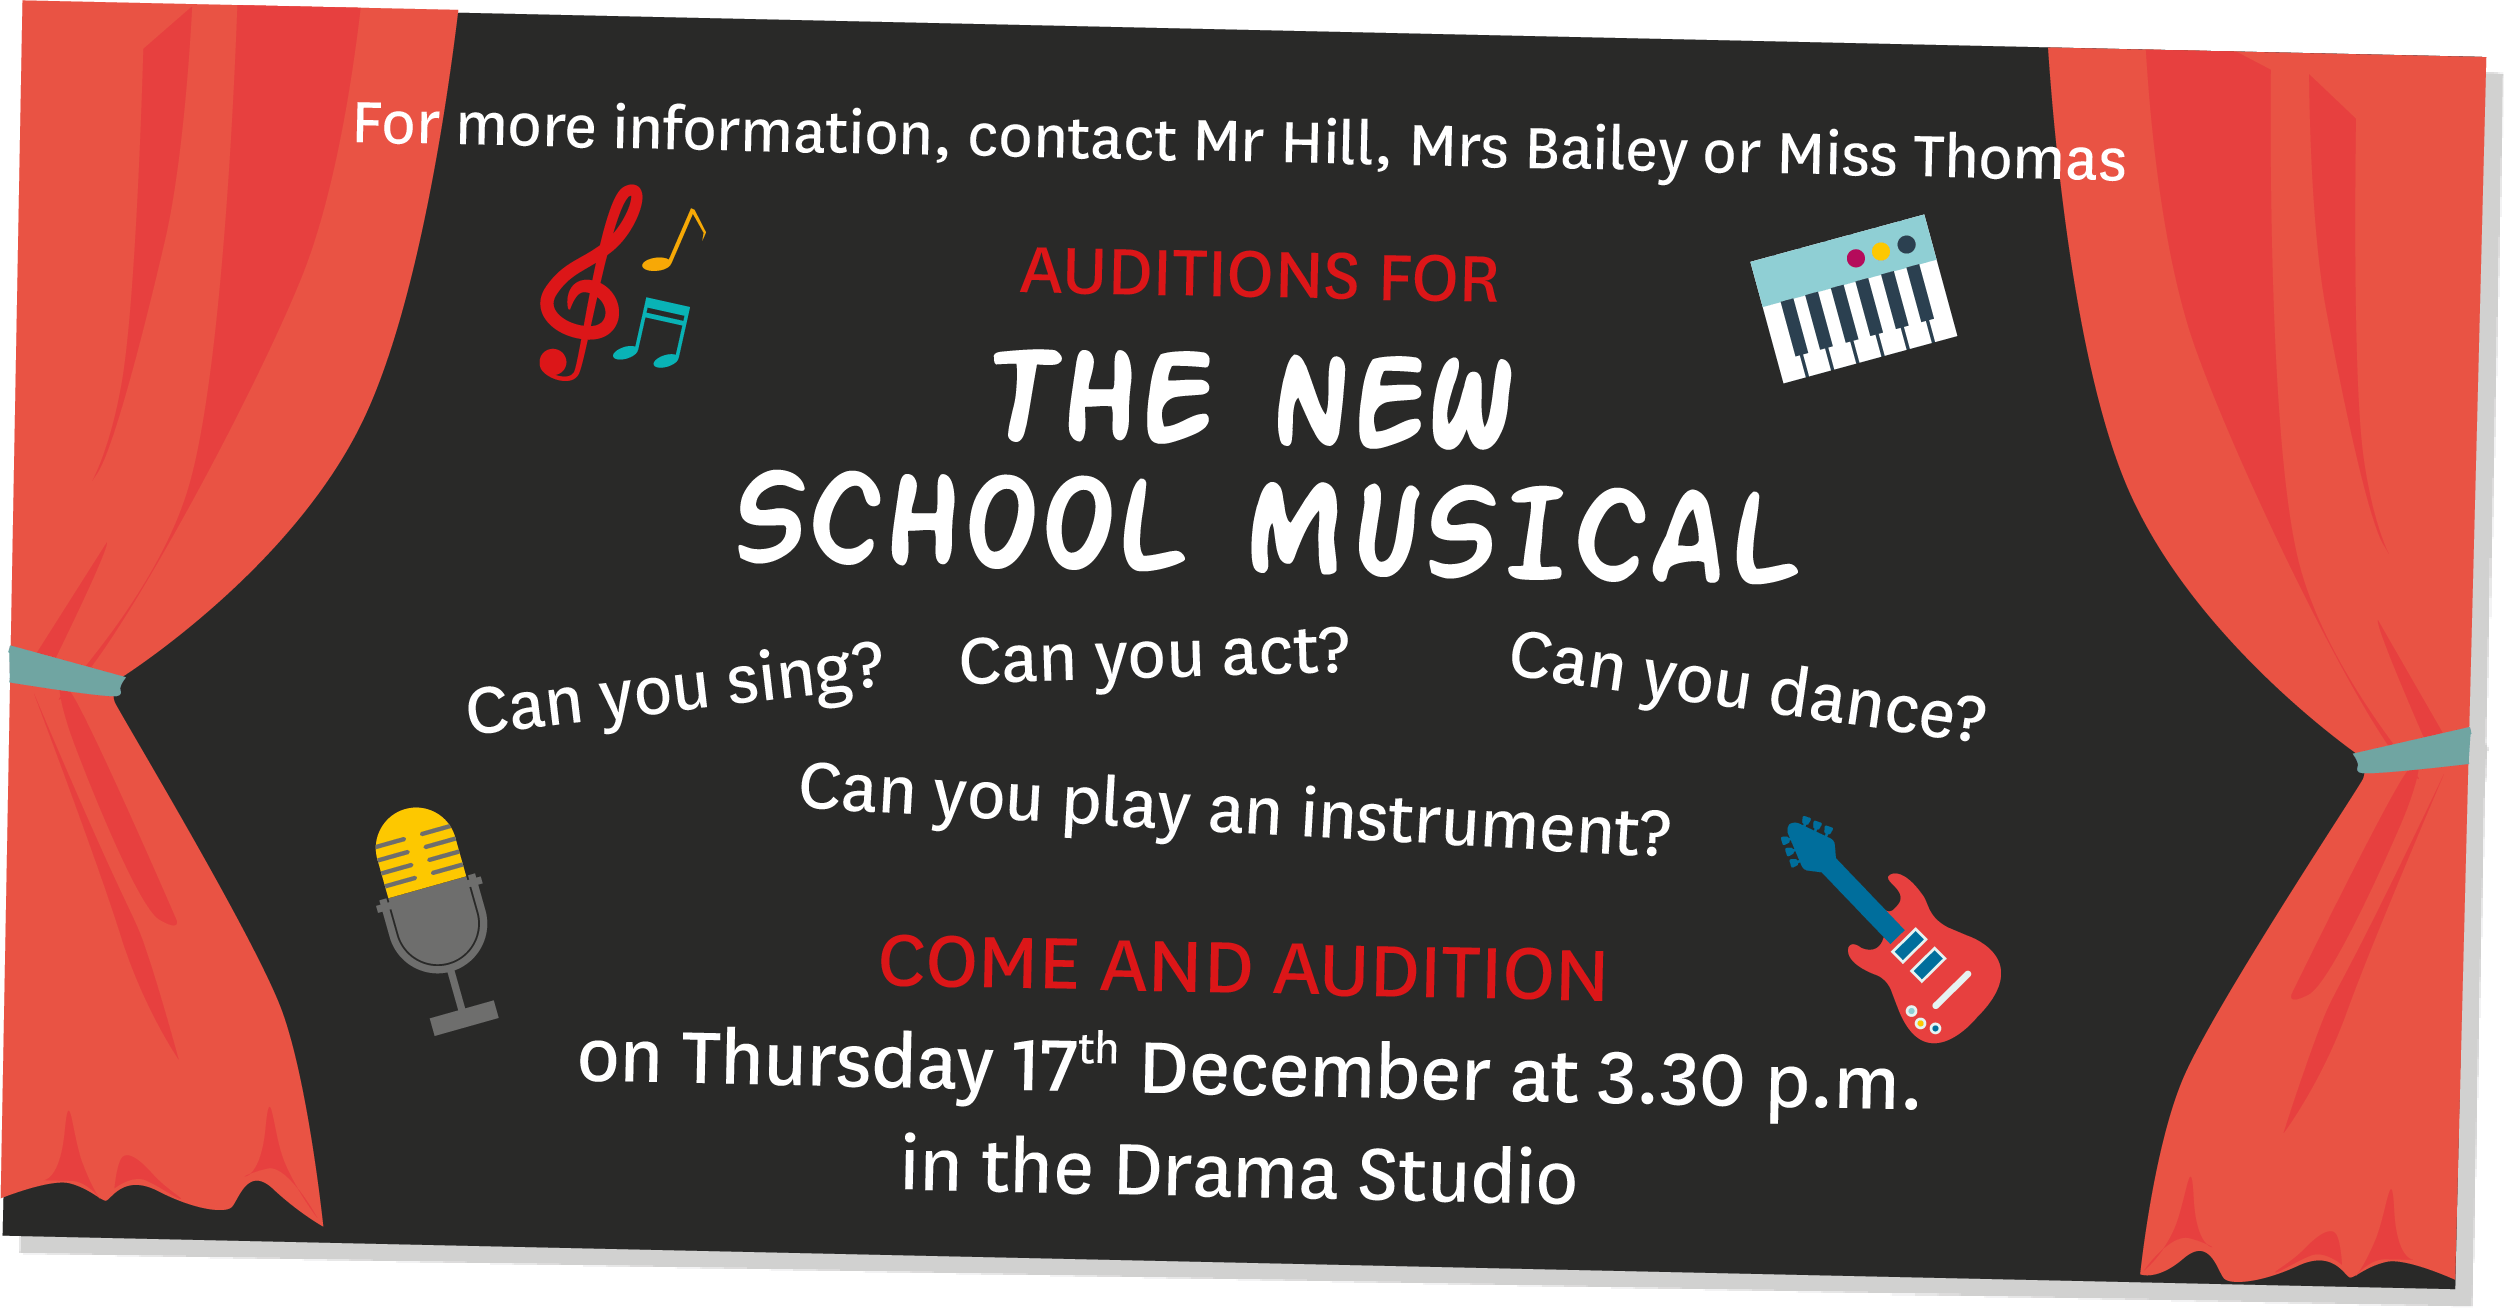 Auditions for the new school musical (2)